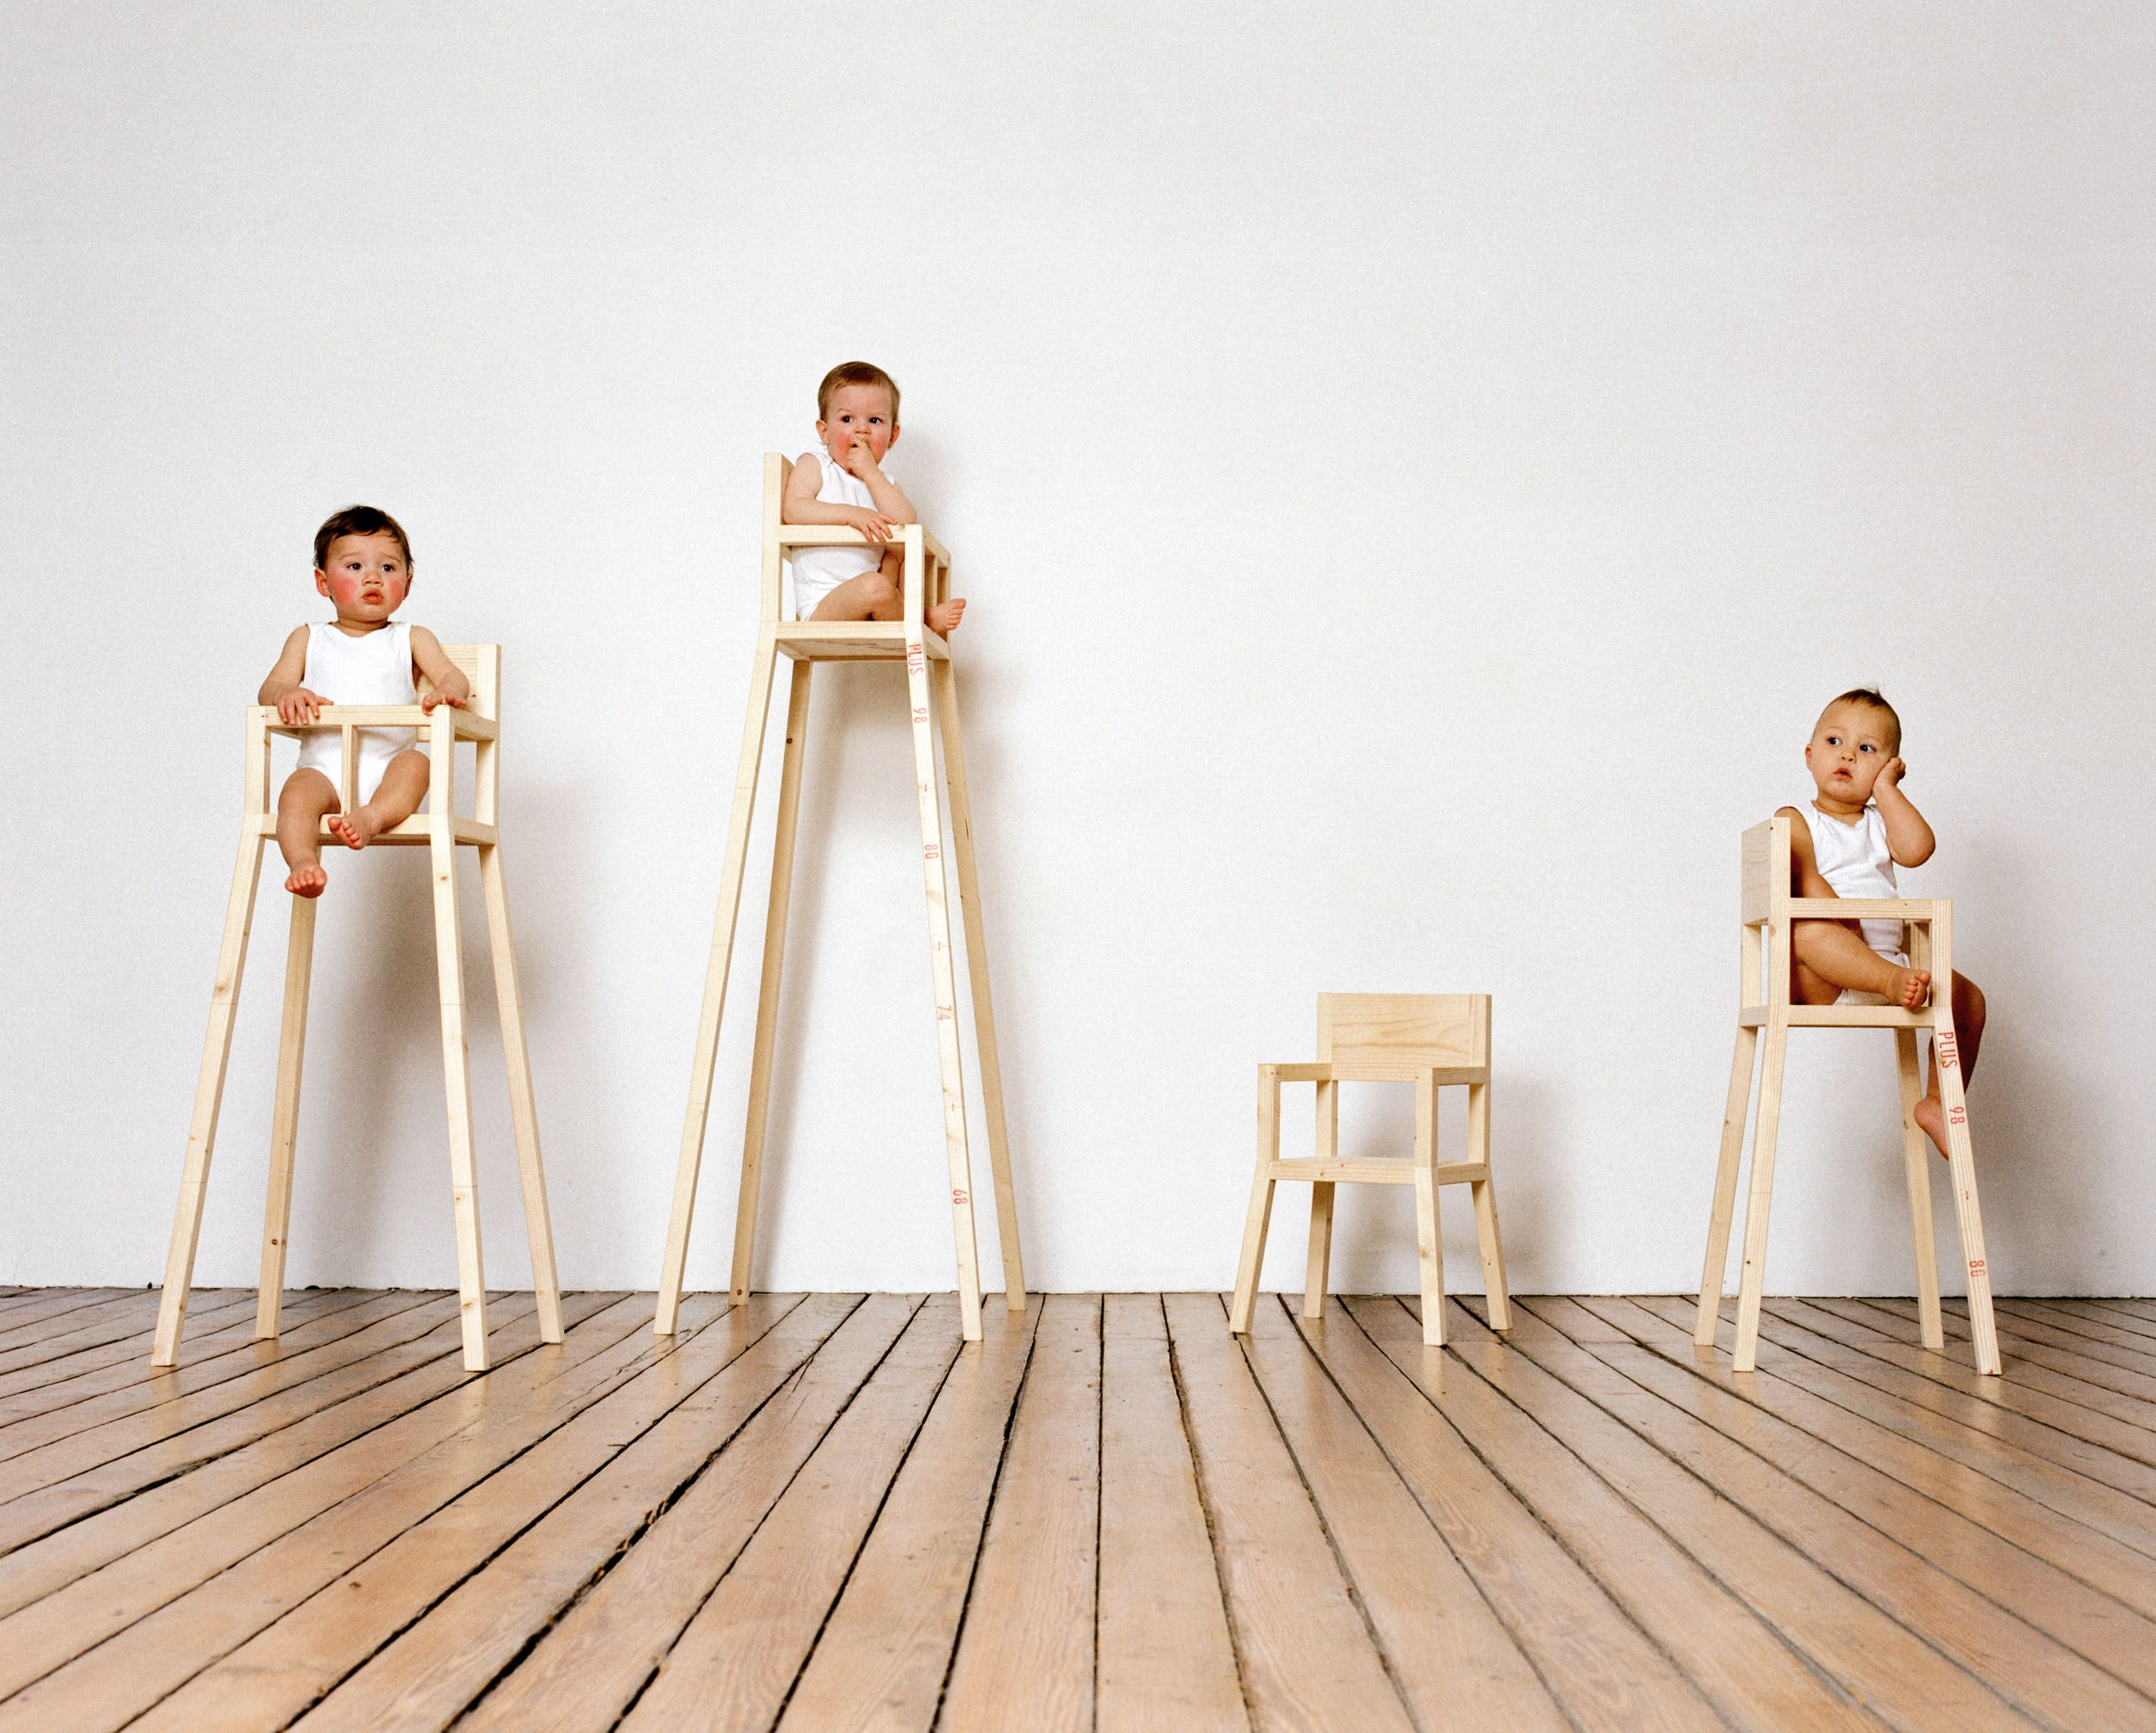 The Mother child dining modern kids furniture by Maartje